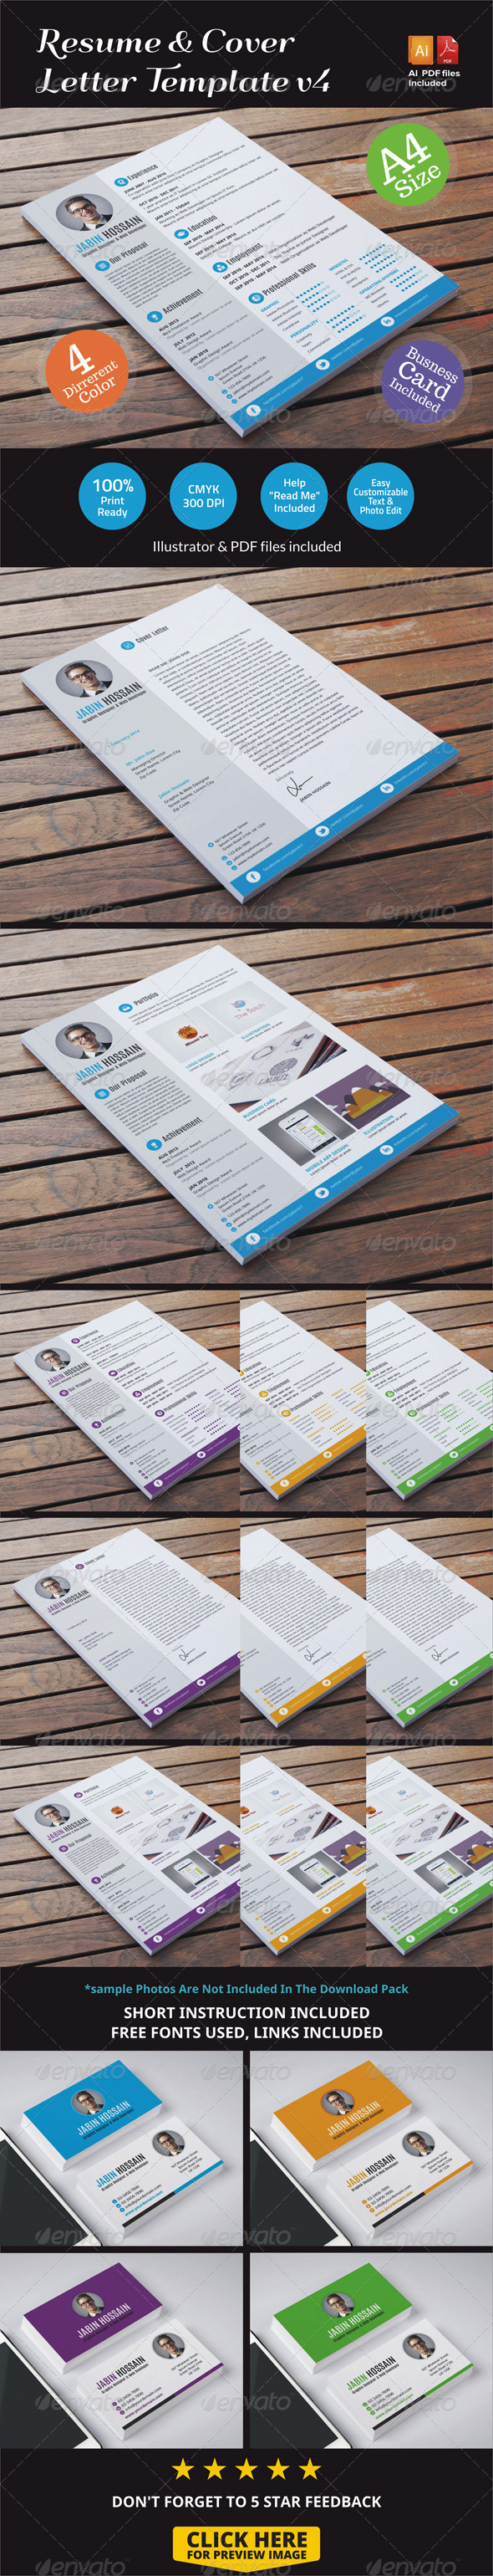 GraphicRiver Resume & Cover Letter Template v4 6867821